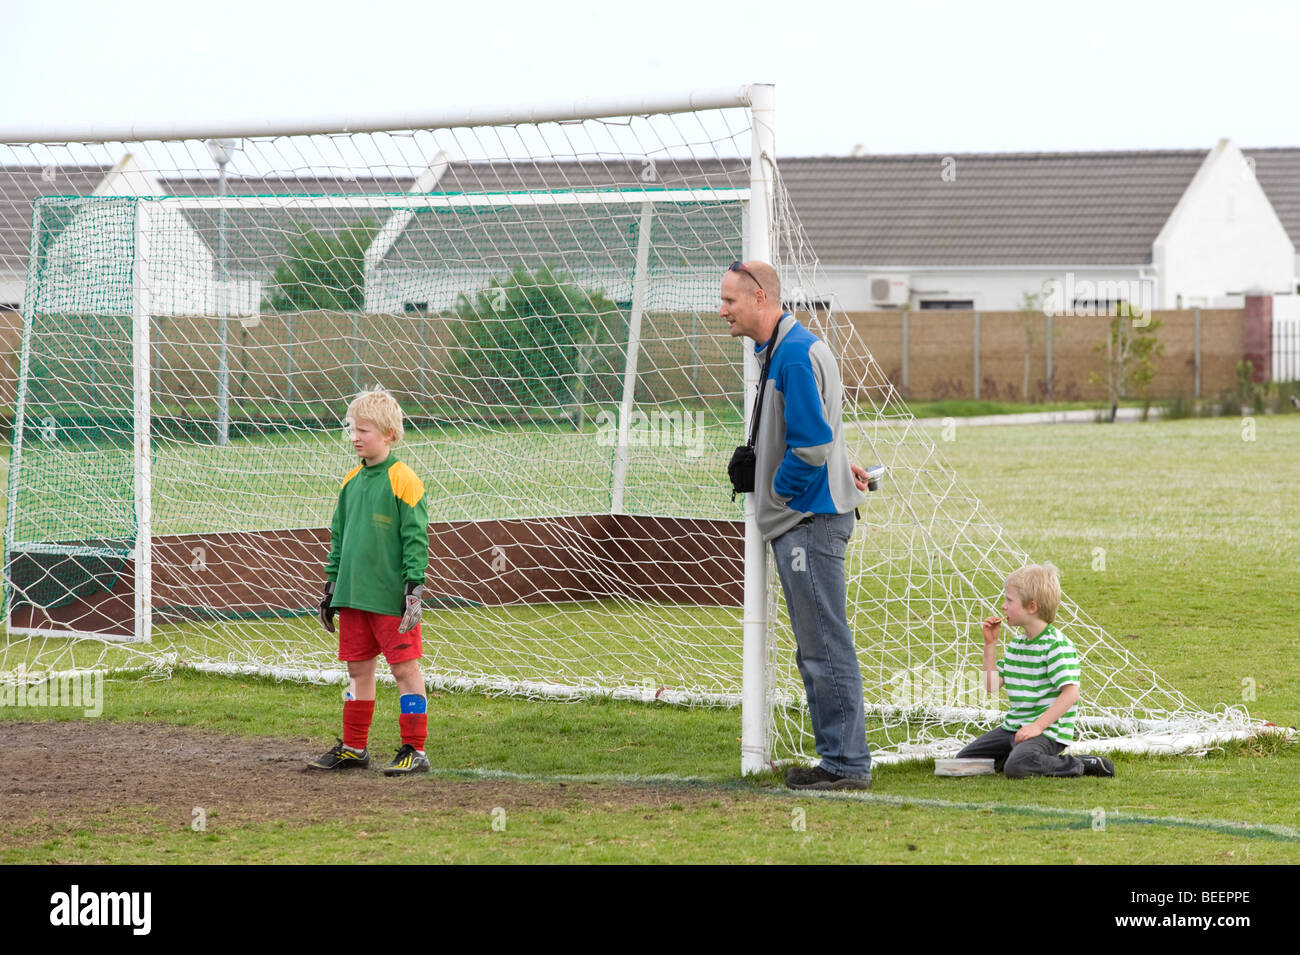 Under 11 goal keeper and his father during a soccer match, Cape Town, South Africa - Stock Image